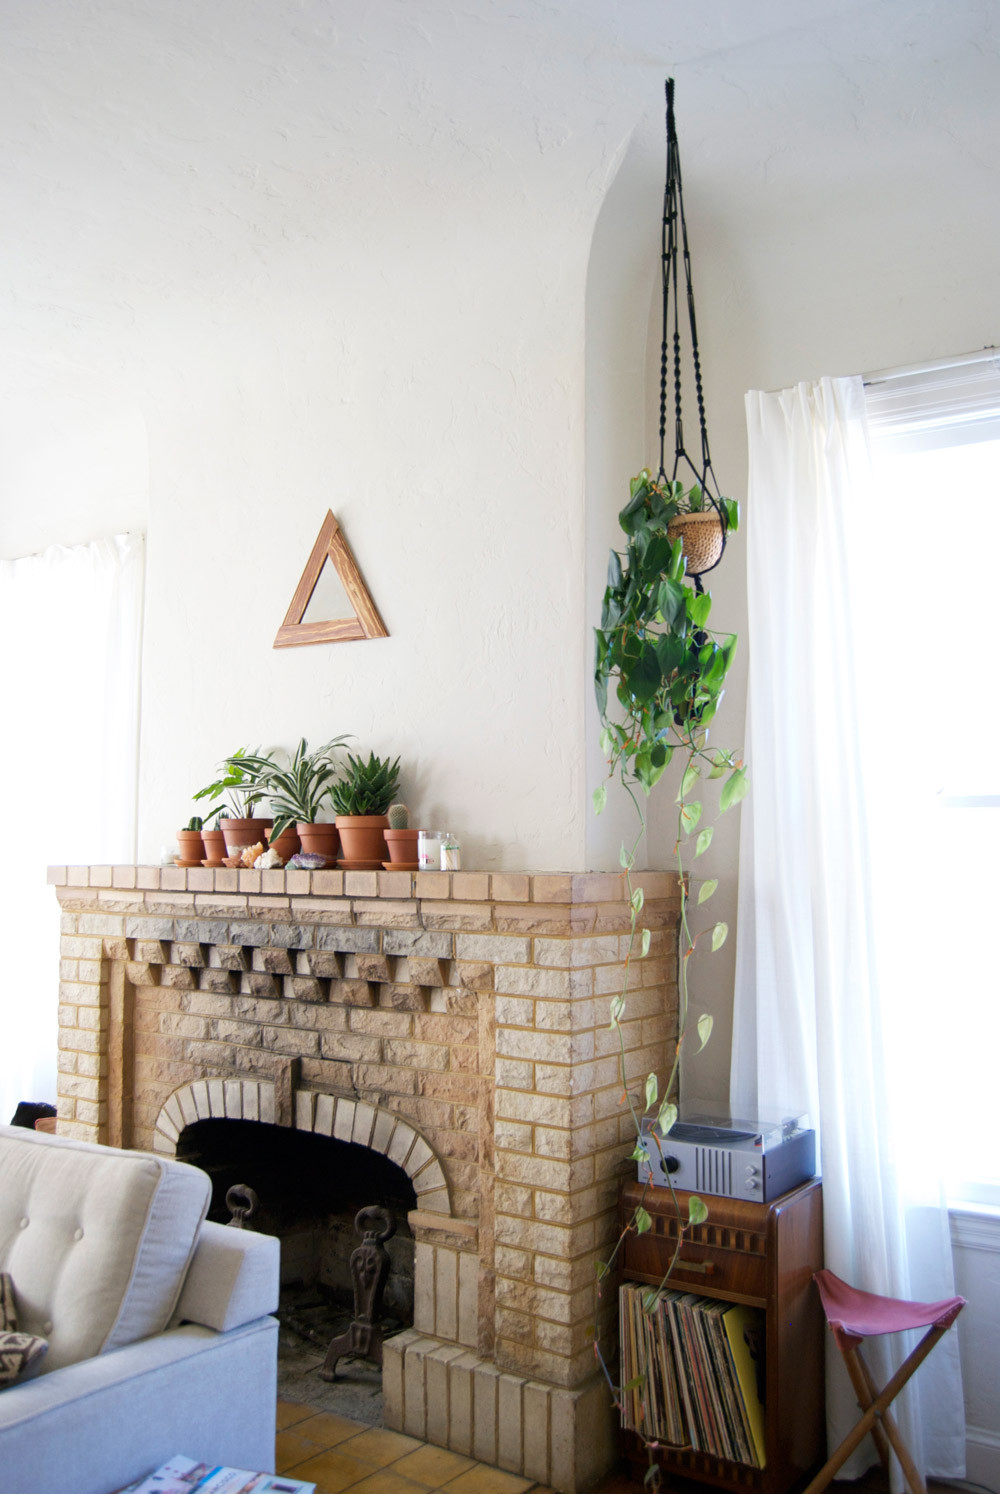 19 of Our Favorite Fireplaces of the Year – Design*Sponge